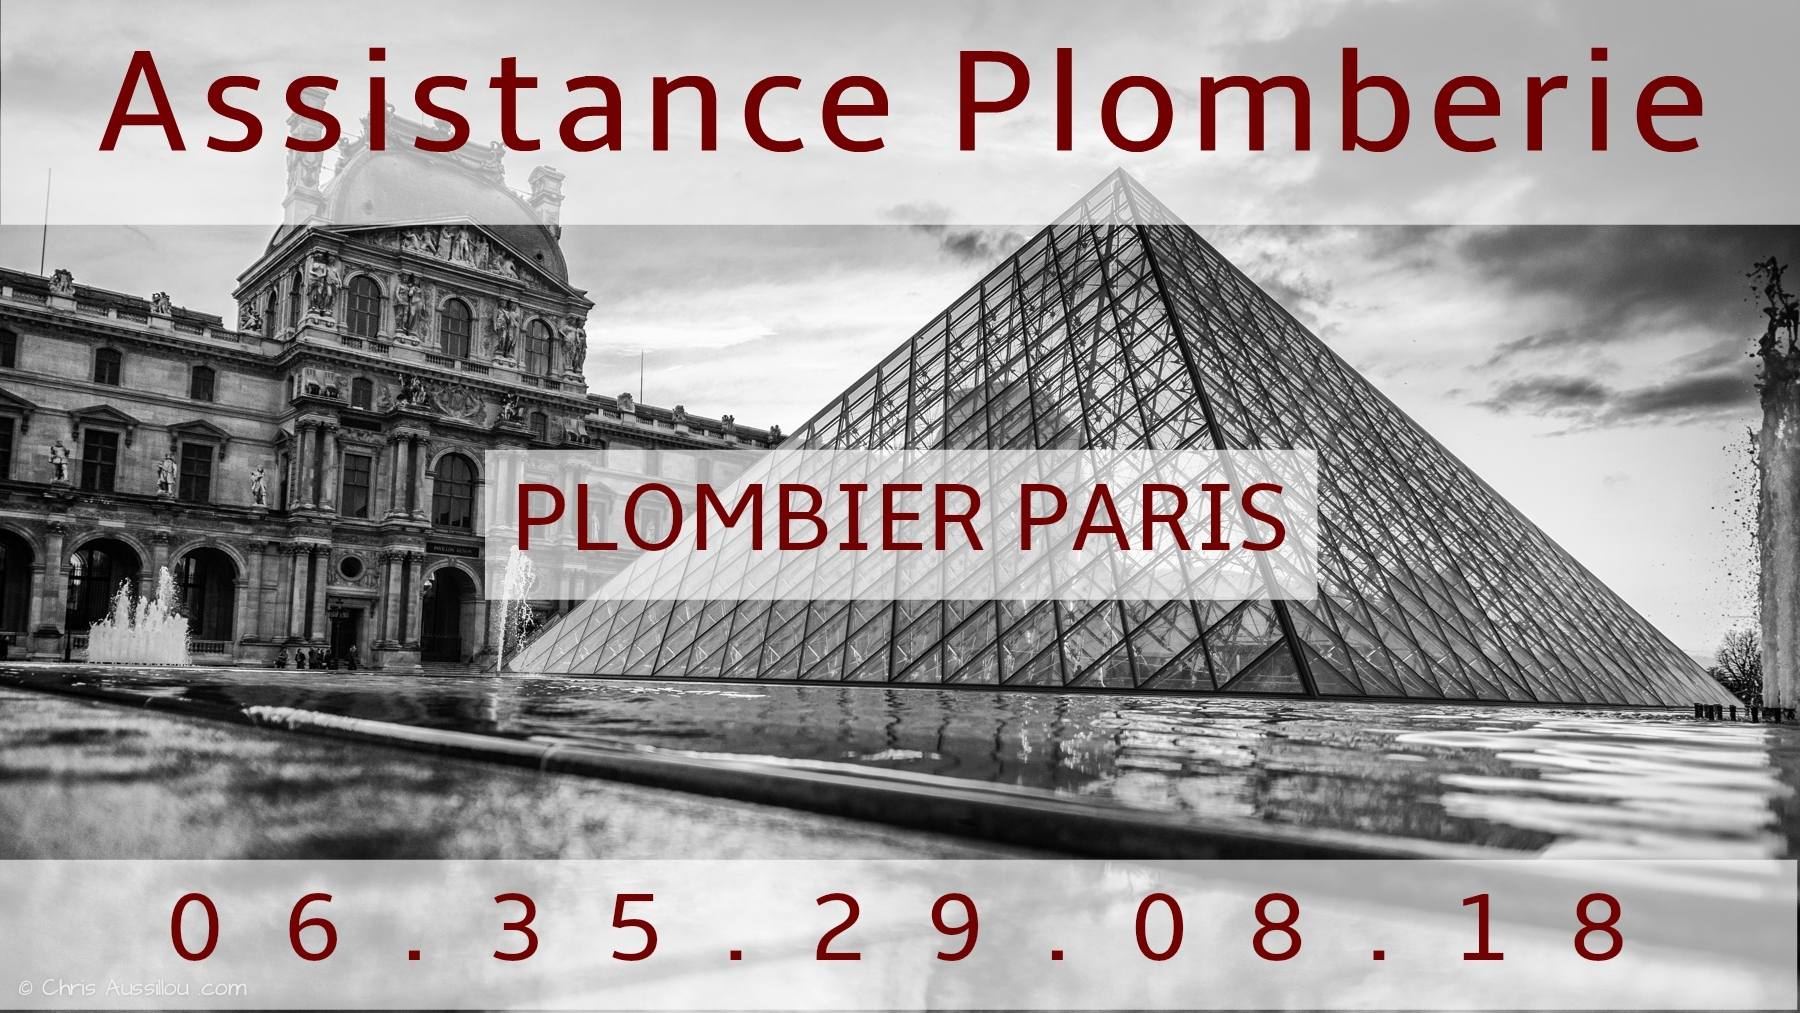 Assistance Plomberie (@assistanceplomberie) Cover Image